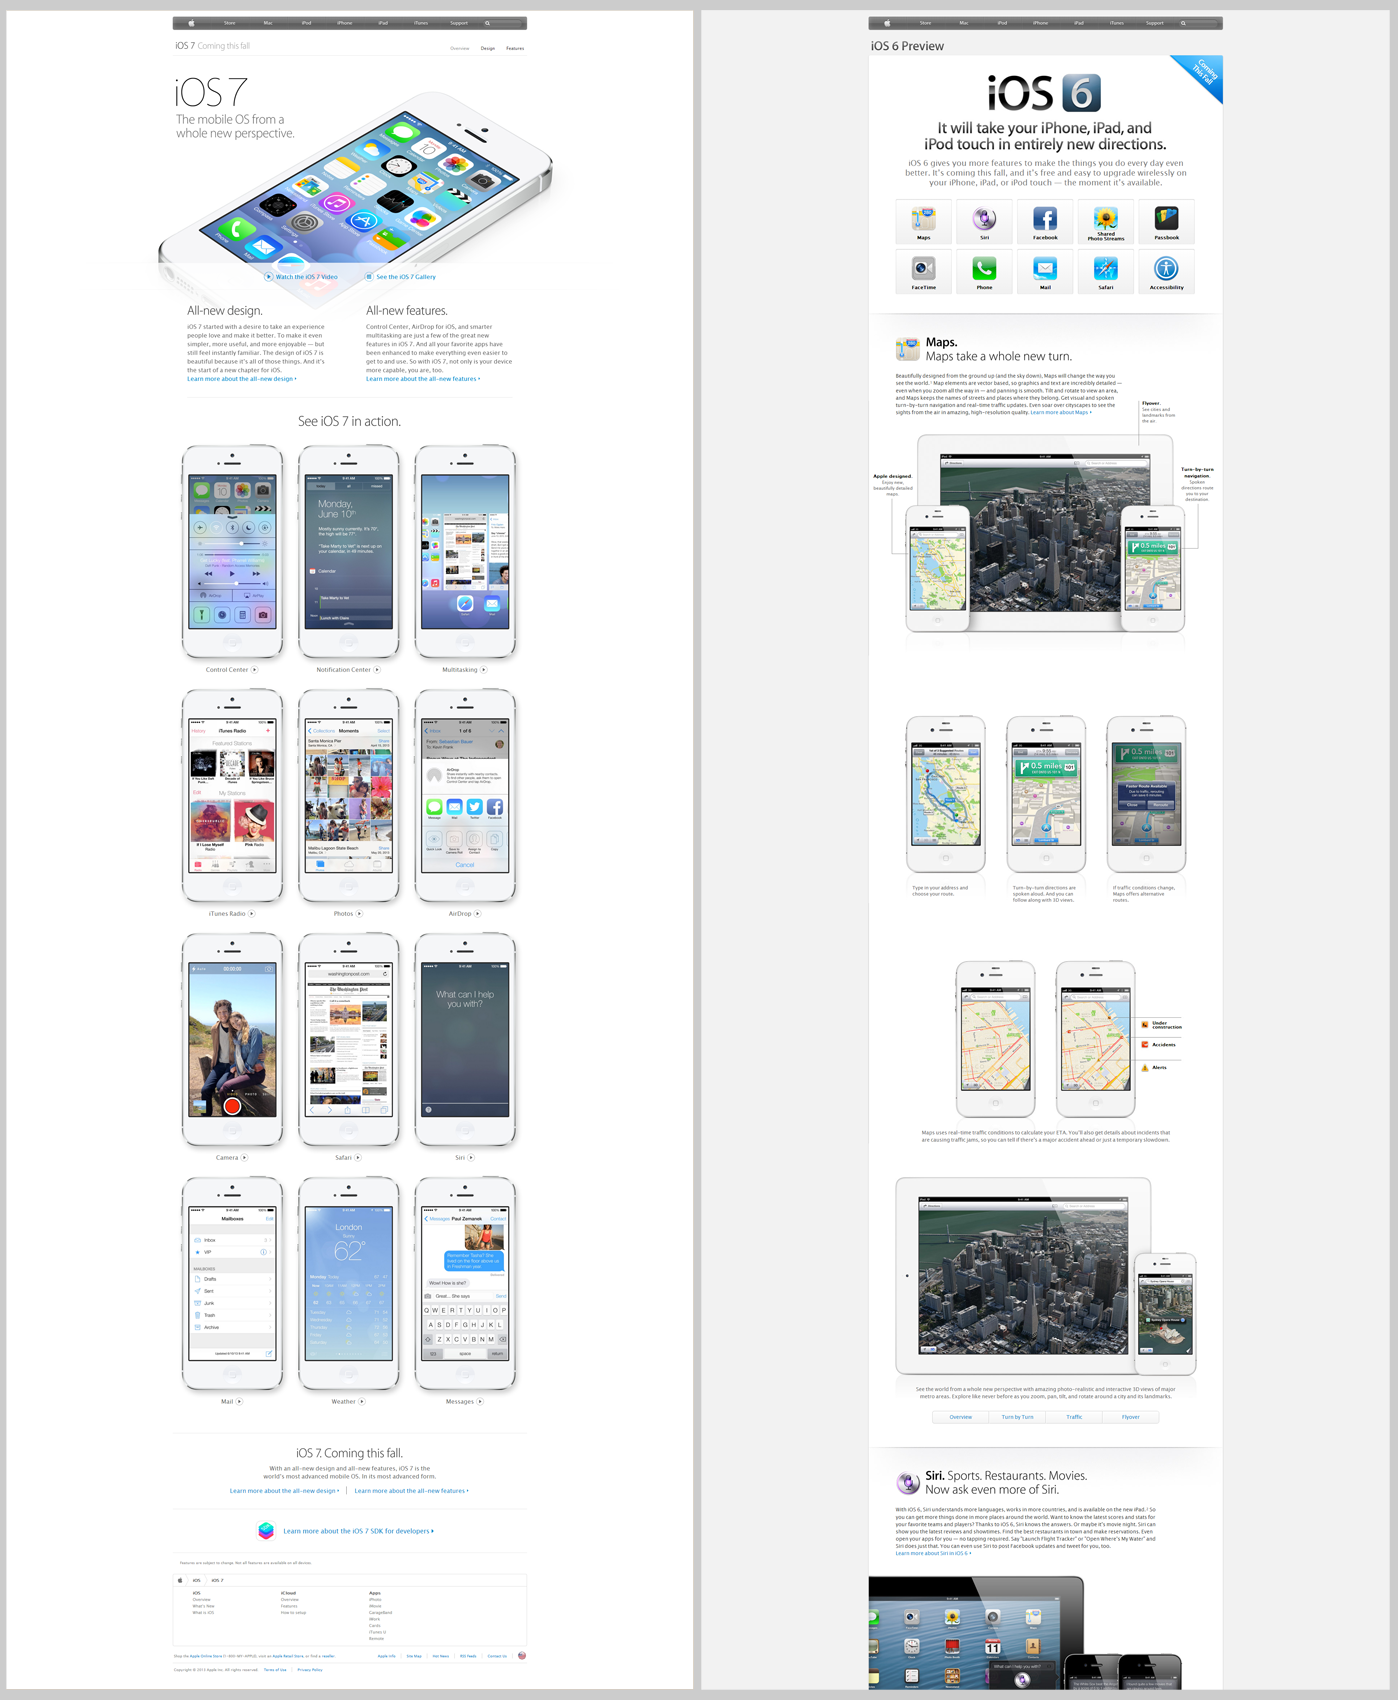 iOS 7 preview page on left (link); iOS 6 preview page on right (link)